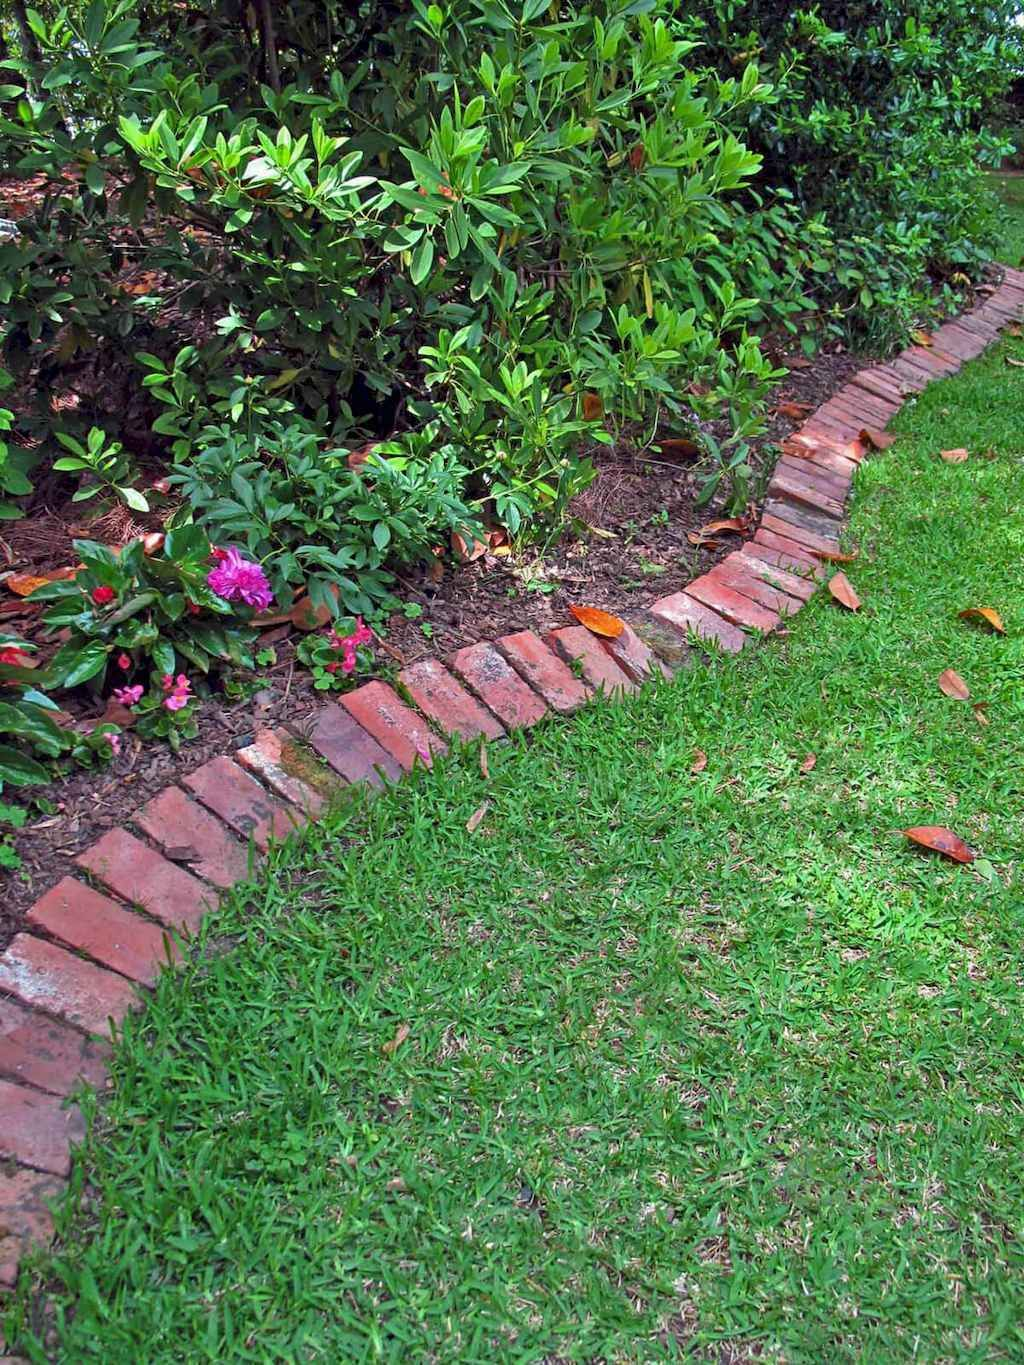 10 Vintage Red Brick Ideas For Your Garden Decortutor Com Brick Garden Brick Garden Edging Diy Lawn